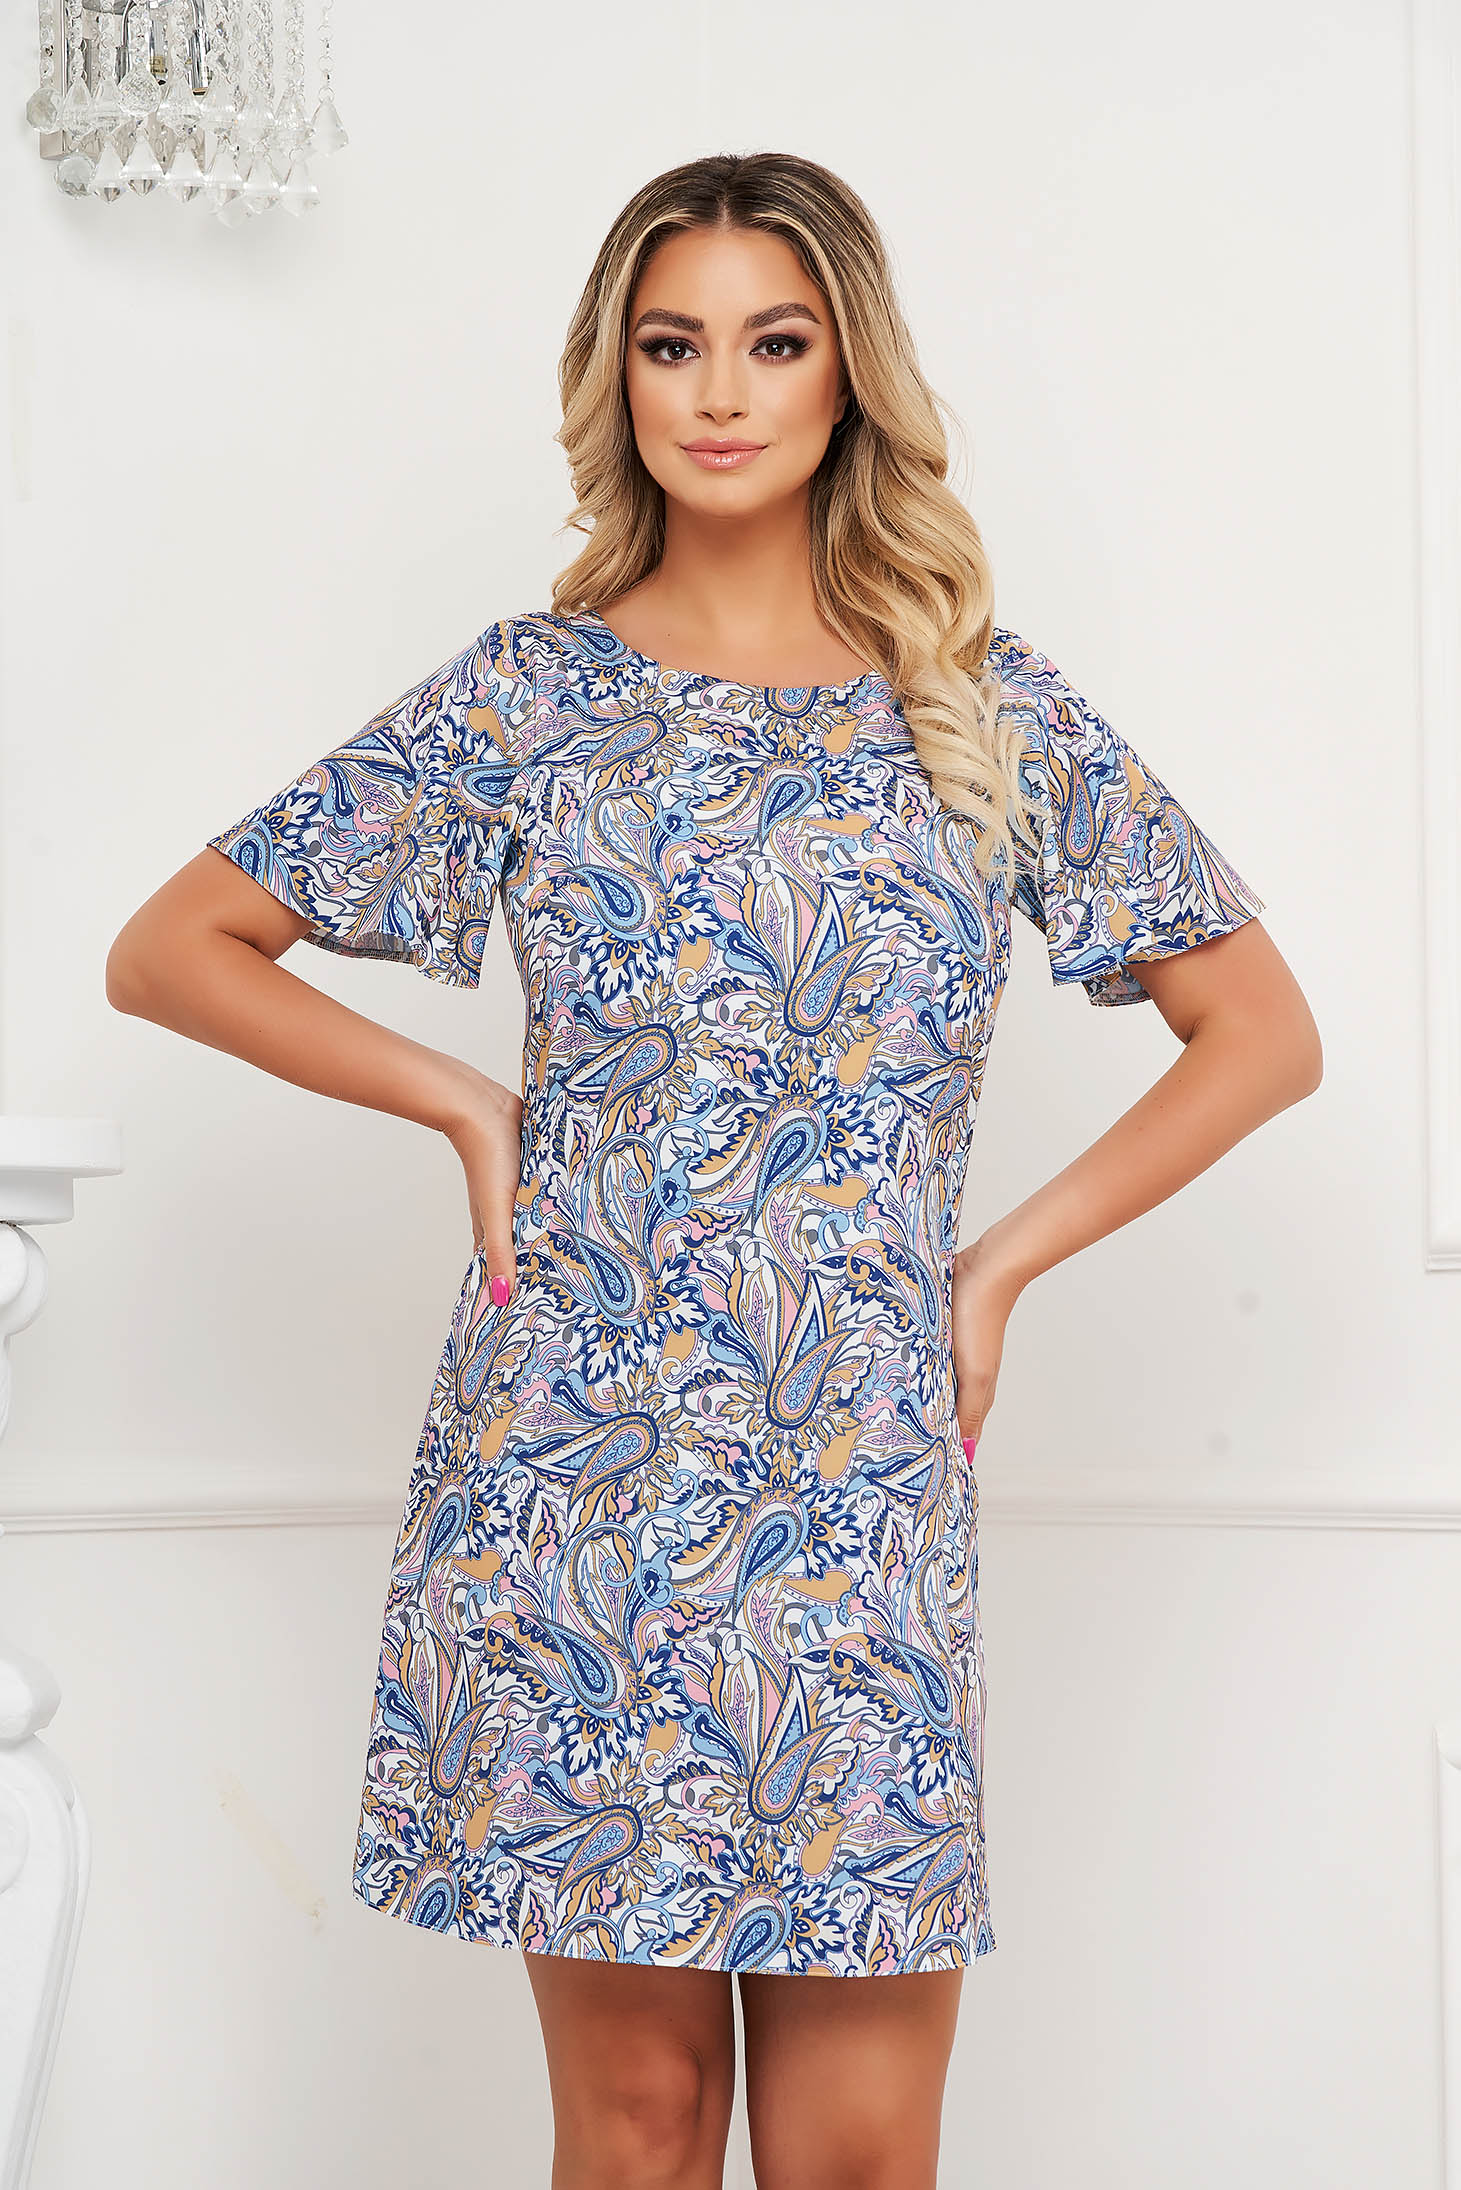 StarShinerS dress thin fabric short cut with rounded cleavage a-line